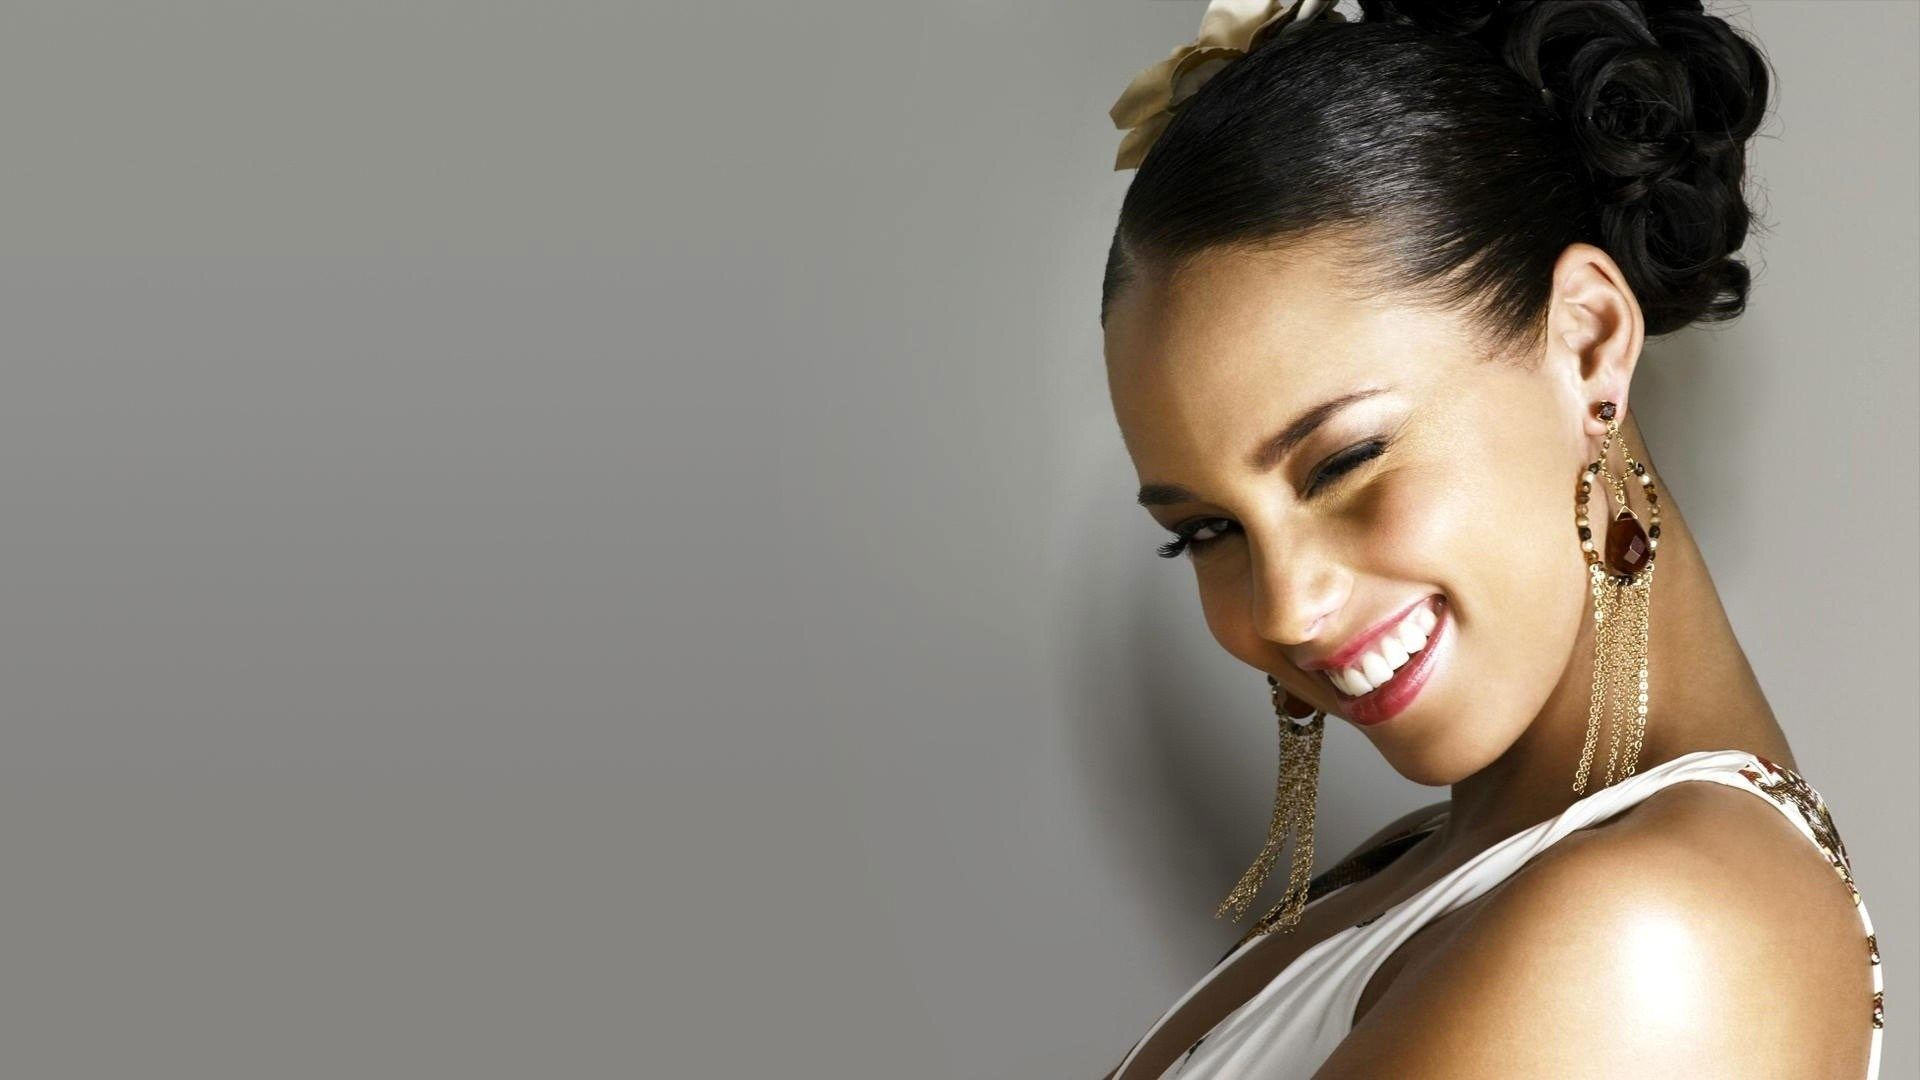 Alicia Keys Image  Full Hd Wallpapers, Photos, 1920X1080 (151